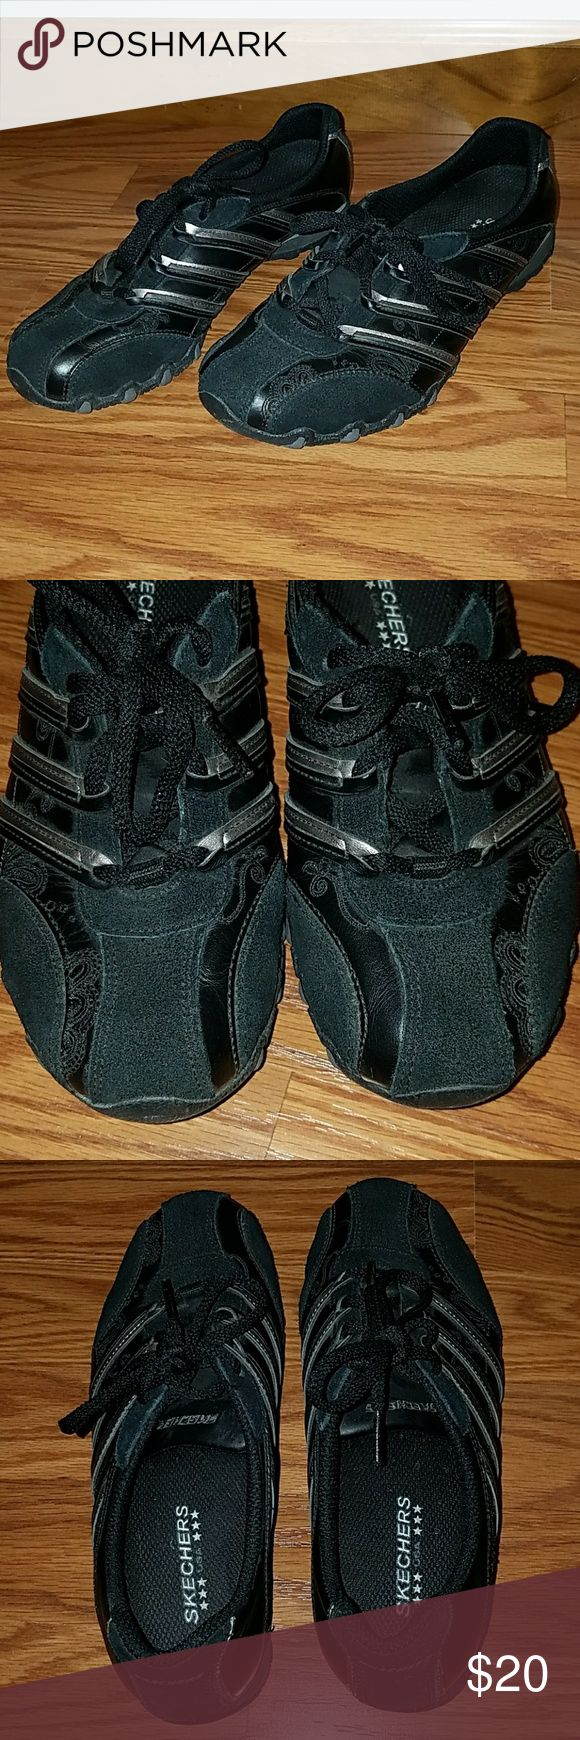 Skechers black low profile active shoe Skechers black with silver stripe active shoe. Low profile cut. Perfect condition,  no wear inside or outside. EUC, smoke free home Skechers Shoes Sneakers